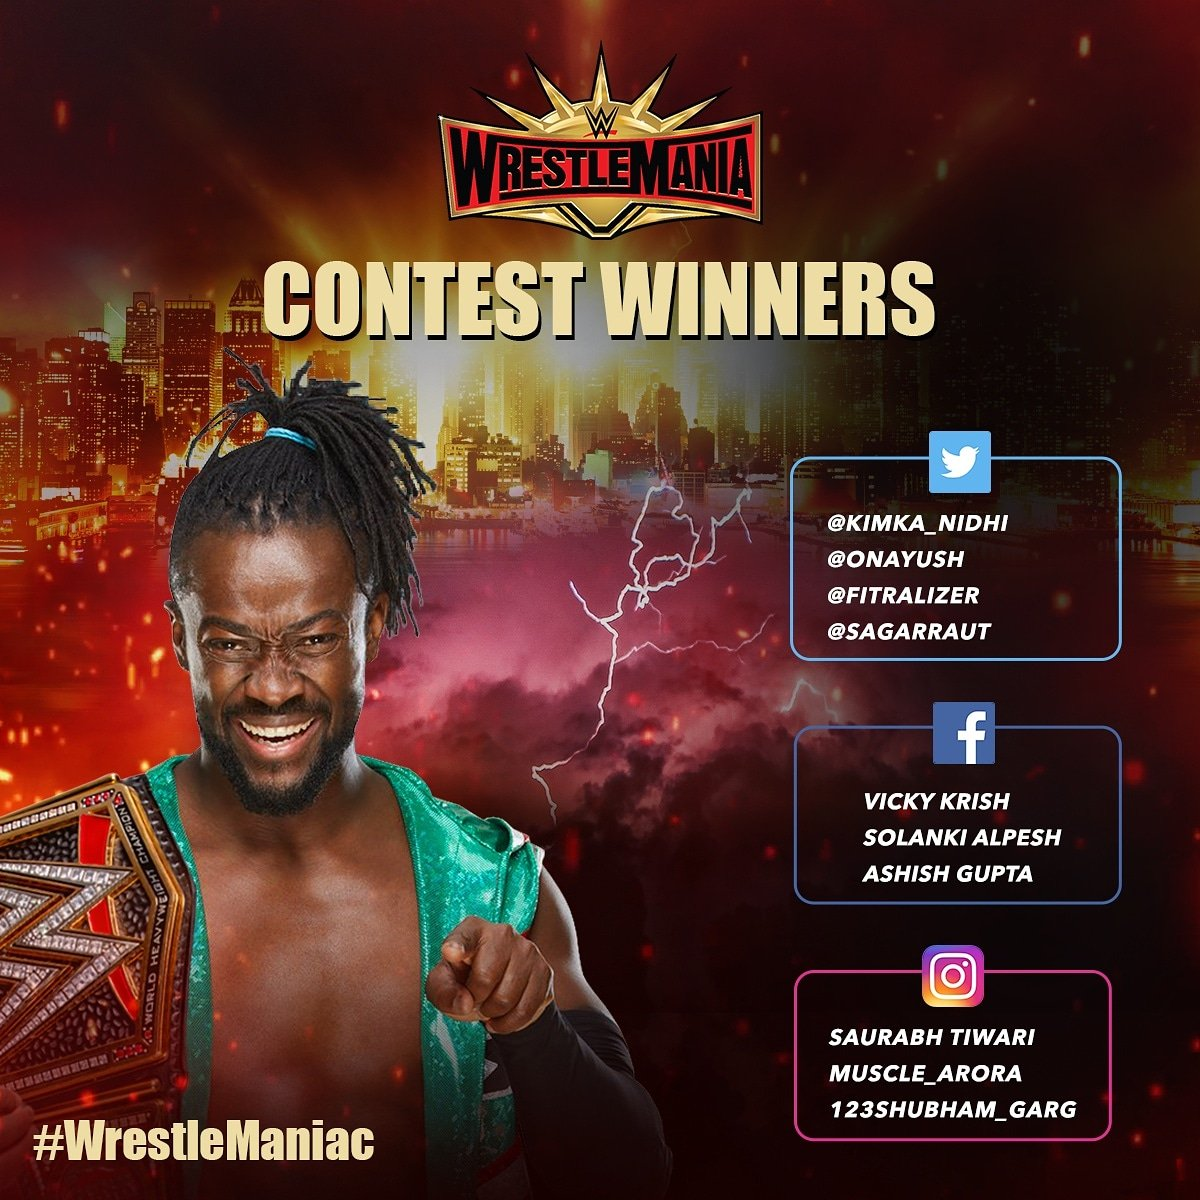 Congratulations to all WRESTLEMANIACS 👏  Kindly DM us your details to claim the official #WWE merchandise!  #SPNSports #WrestleManiac #WrestleMania